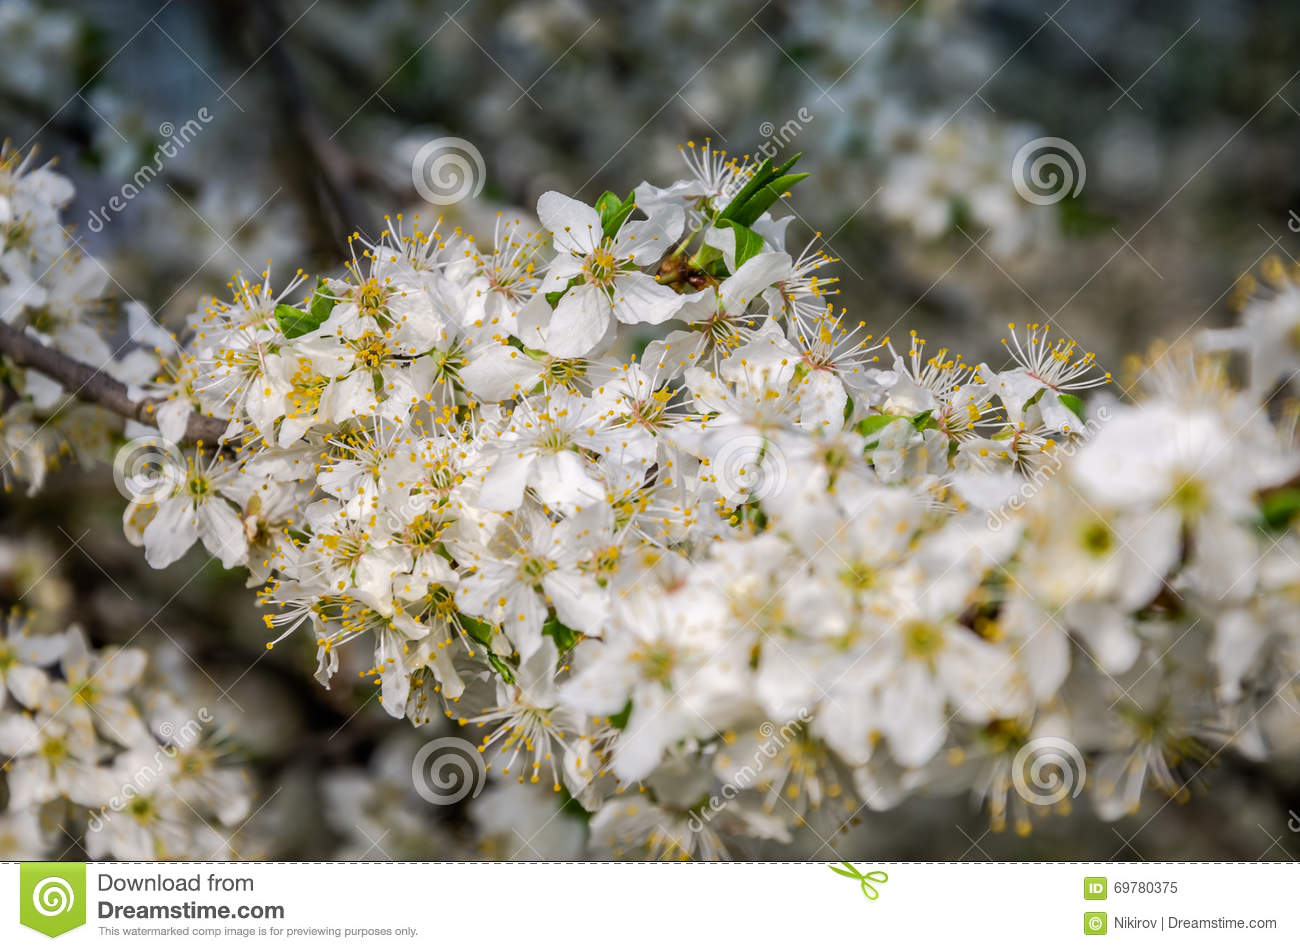 Blooming White Flowers In Early Spring Apple Tree In The Garden In